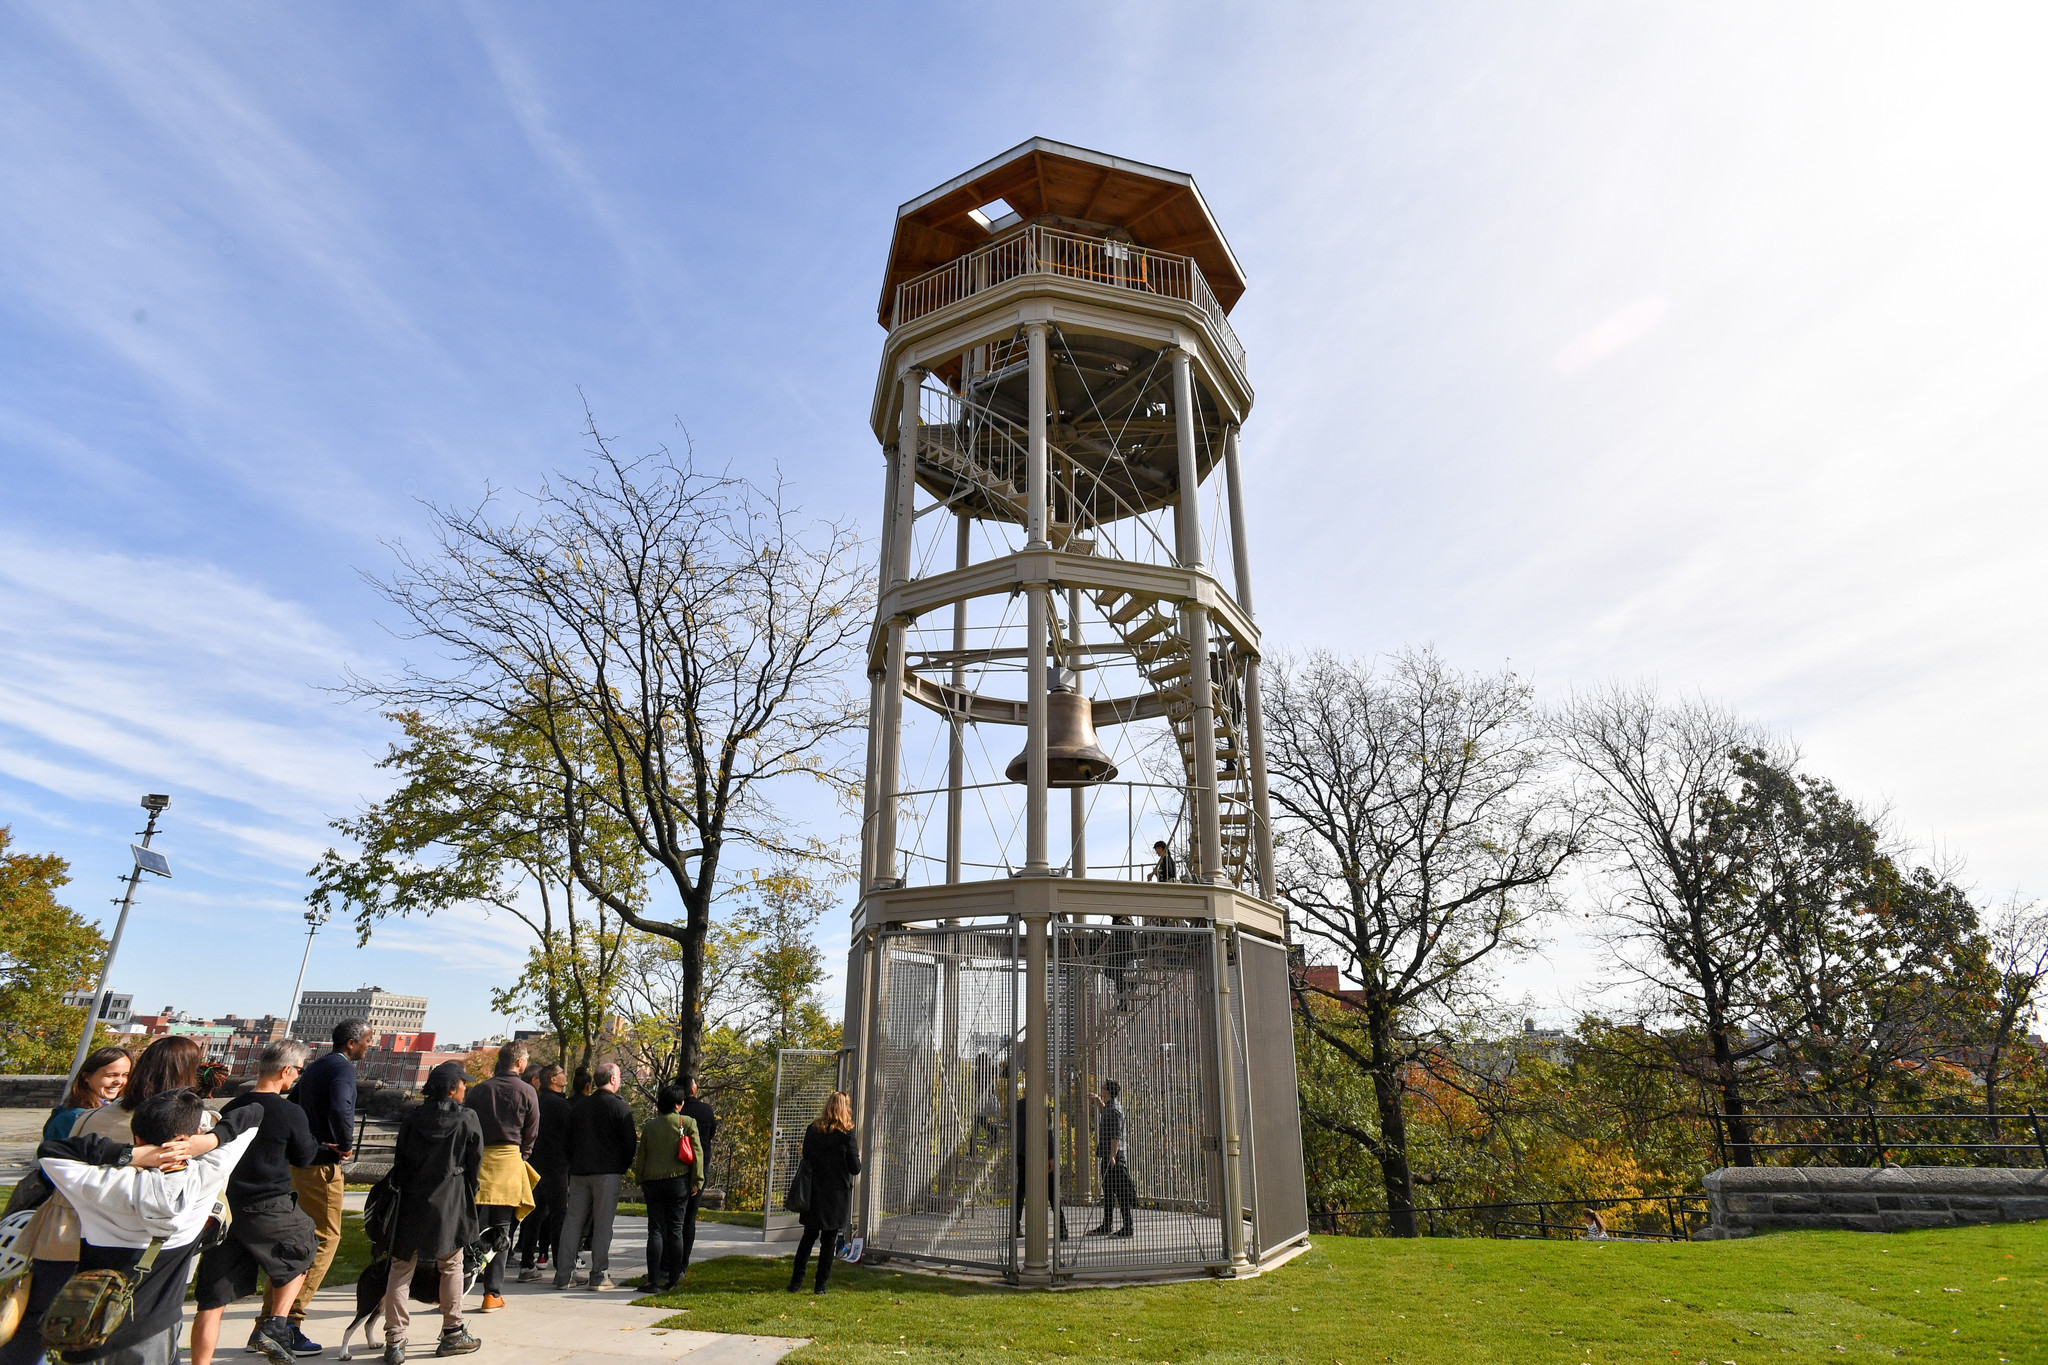 Reason to get excited: A historic Harlem watchtower is beautifully restored